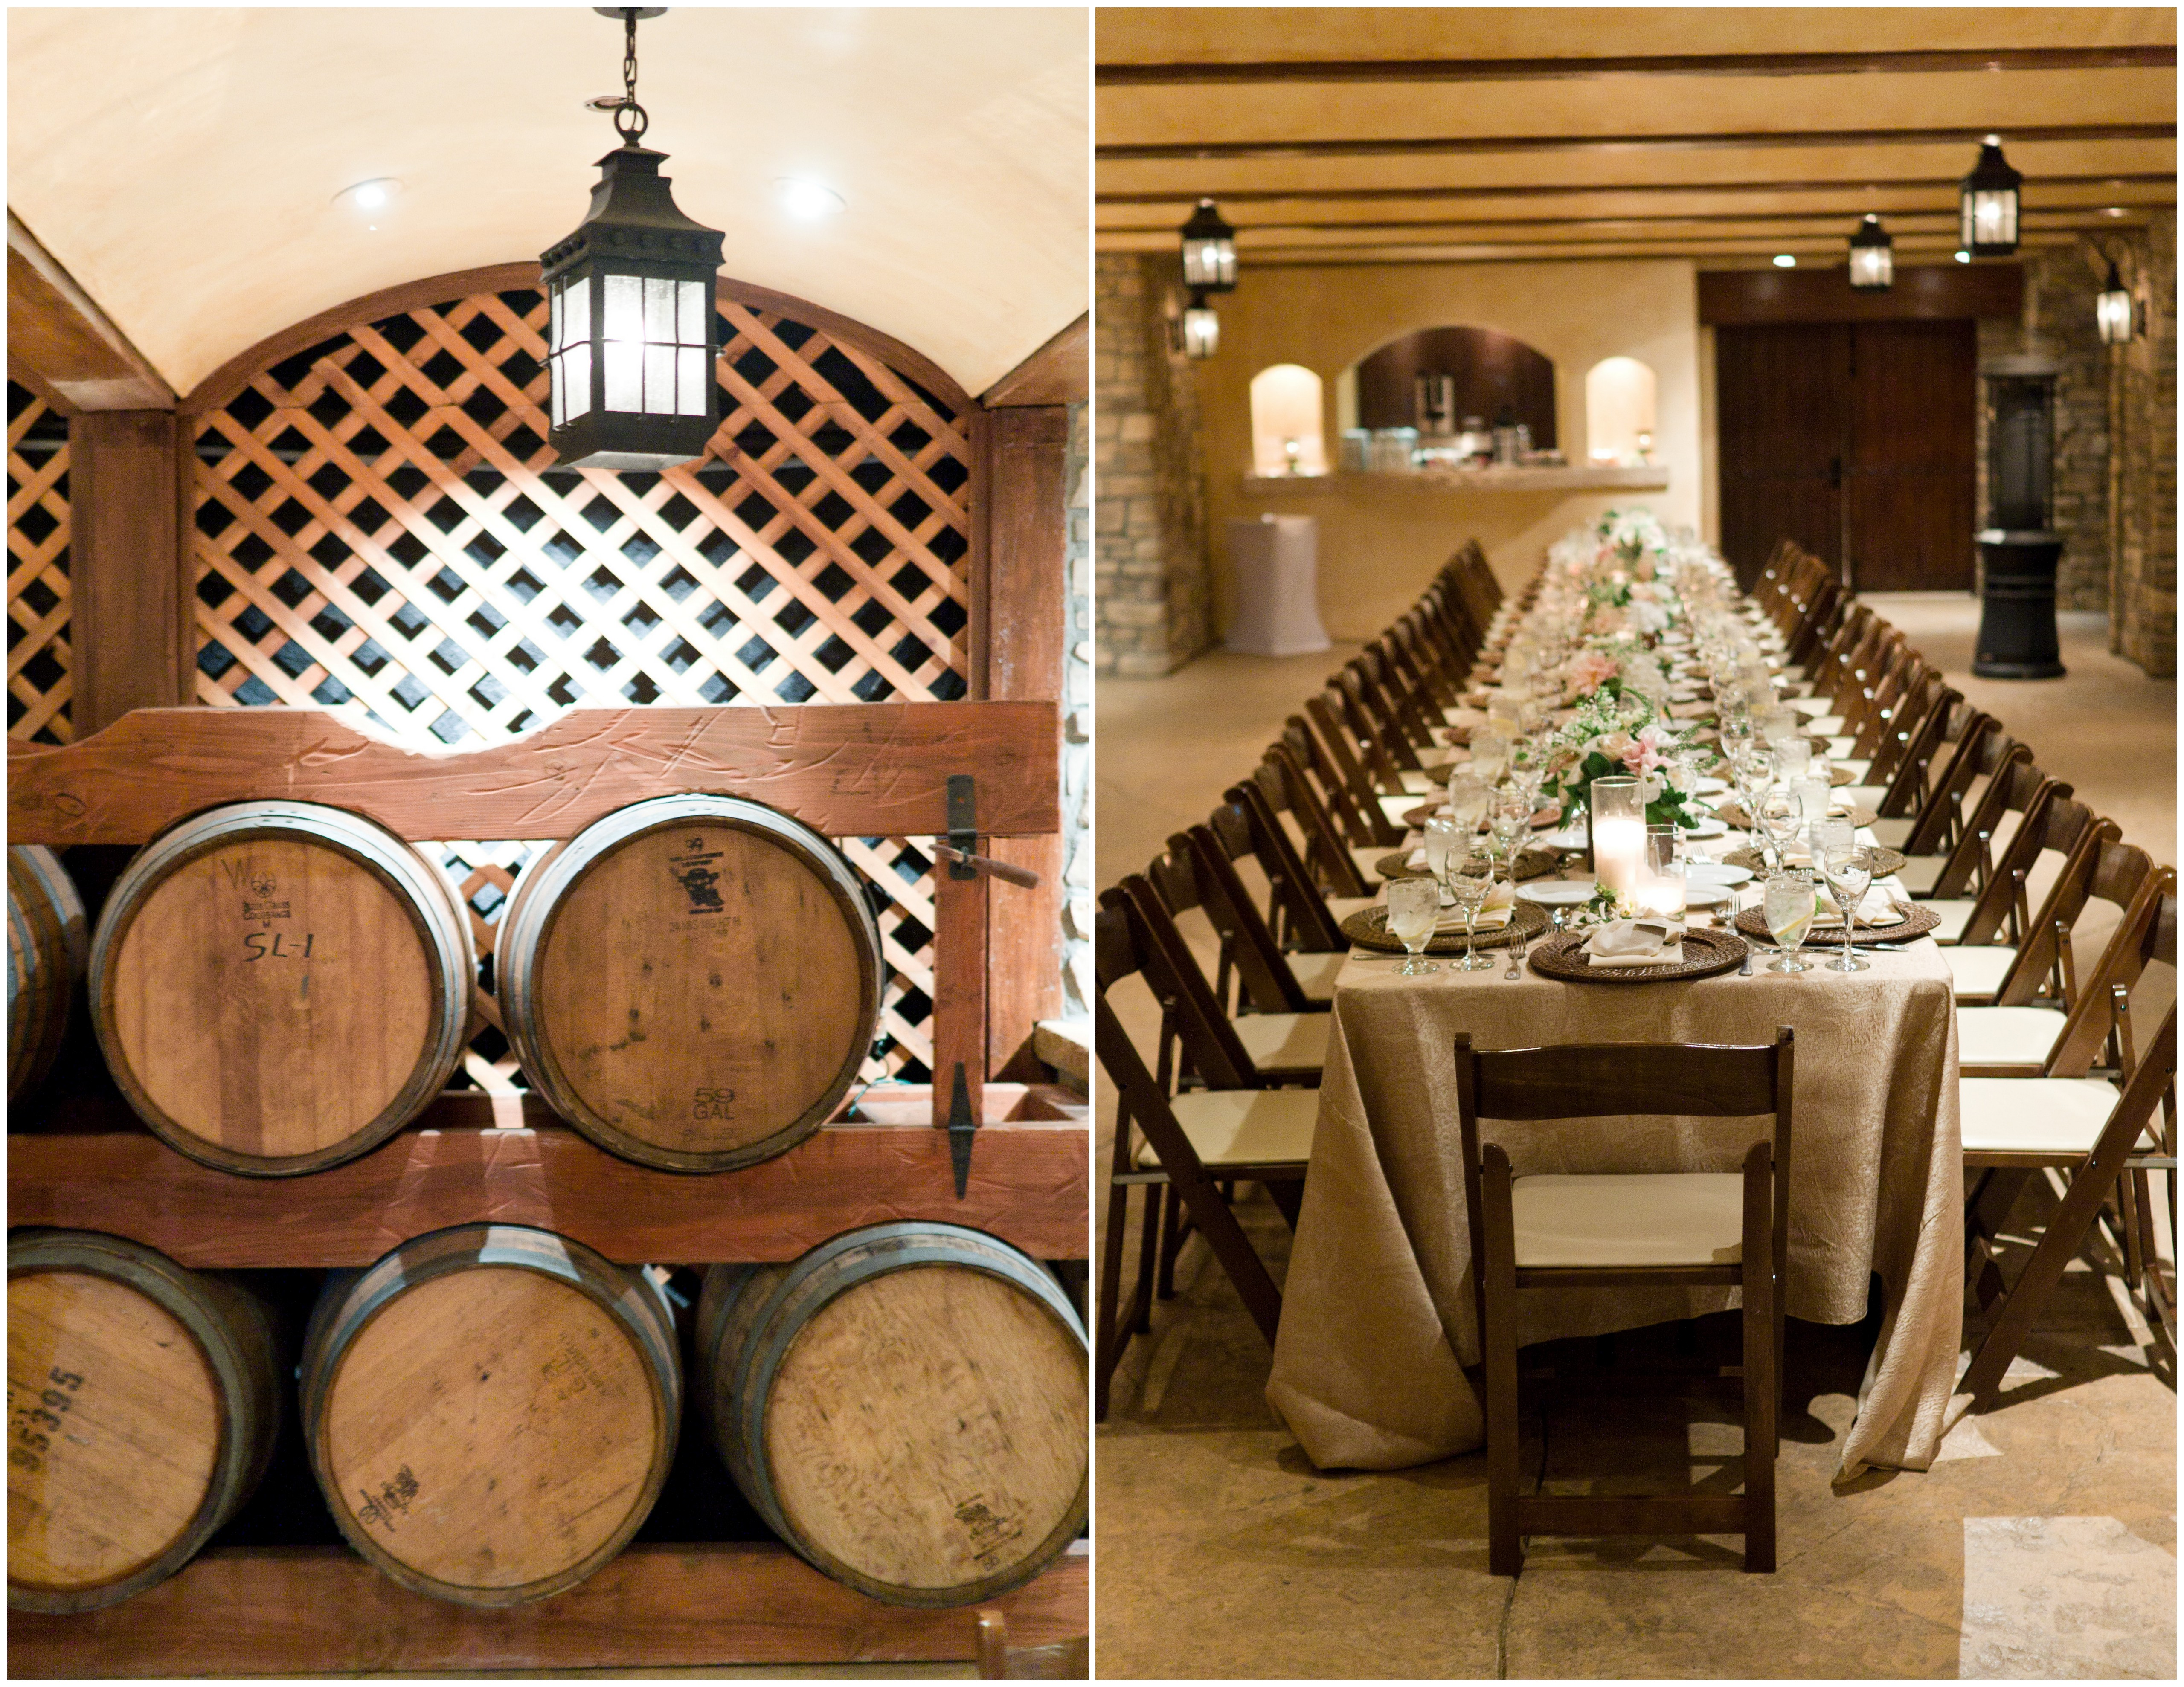 wine cellar rehearsal dinner inspired by this